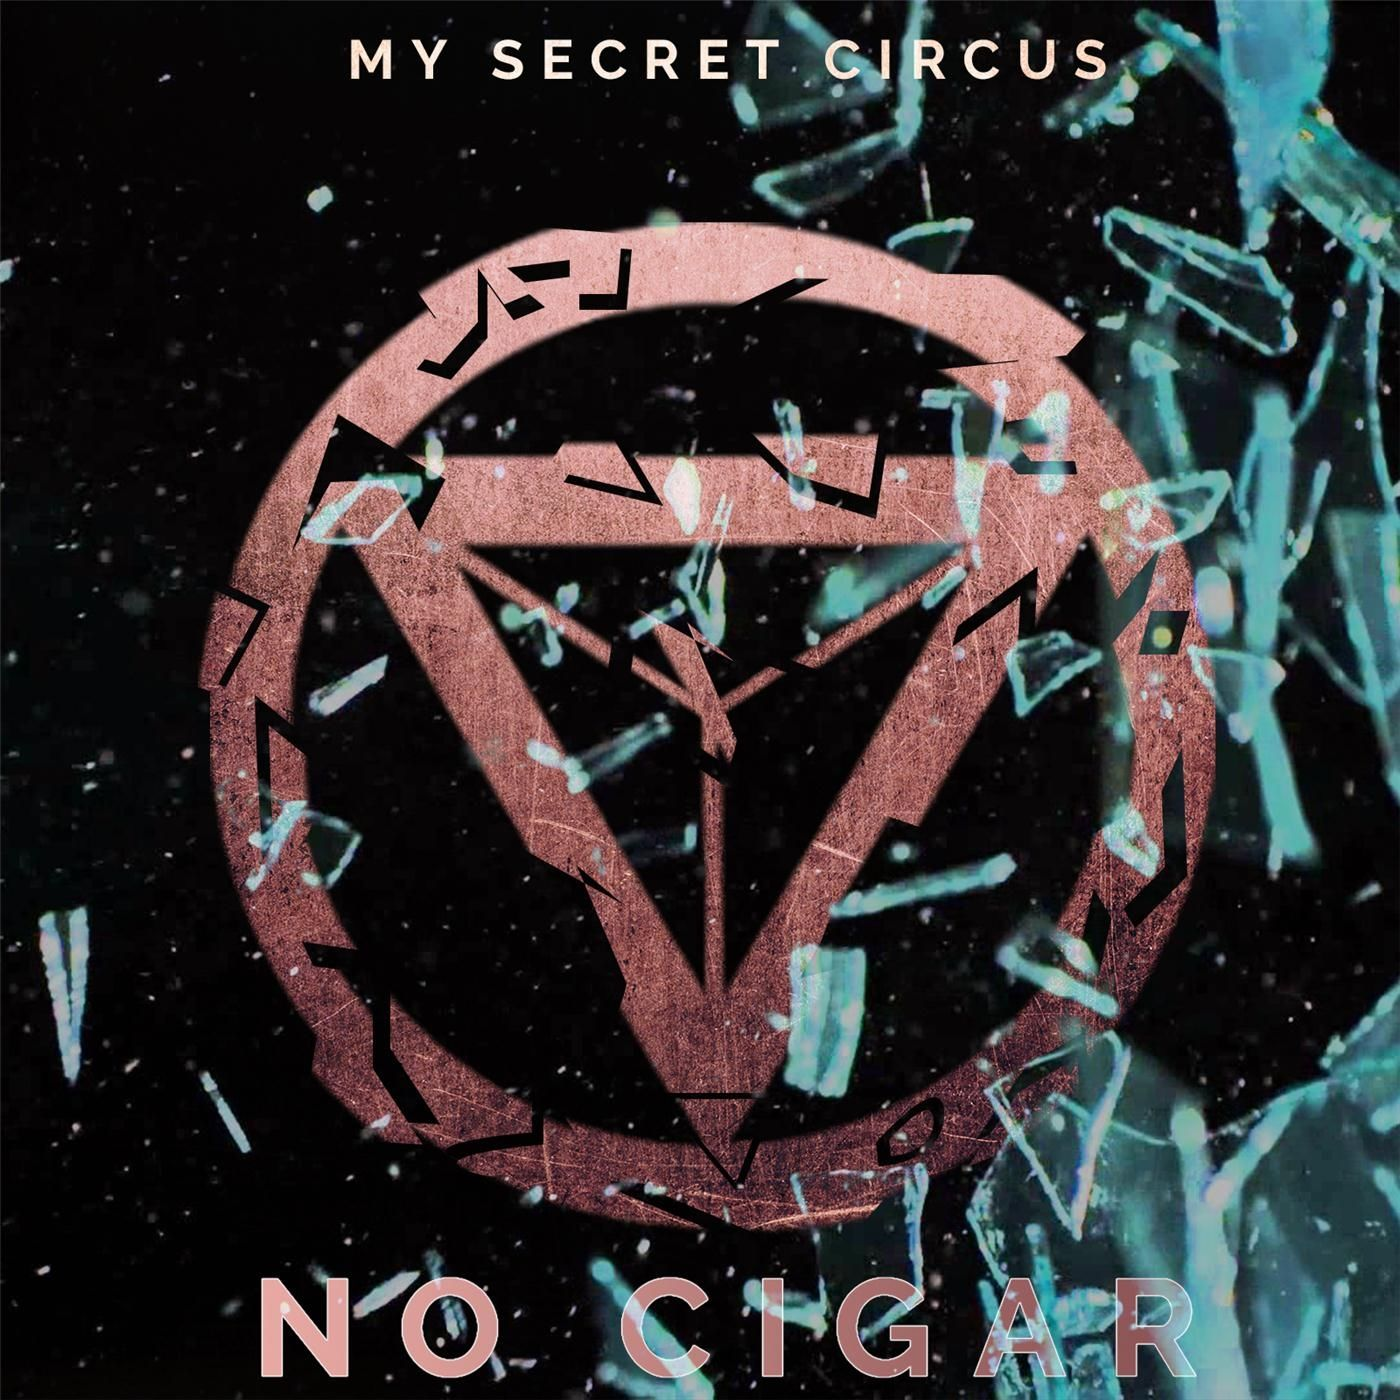 My Secret Circus - No Cigar [single] (2016)